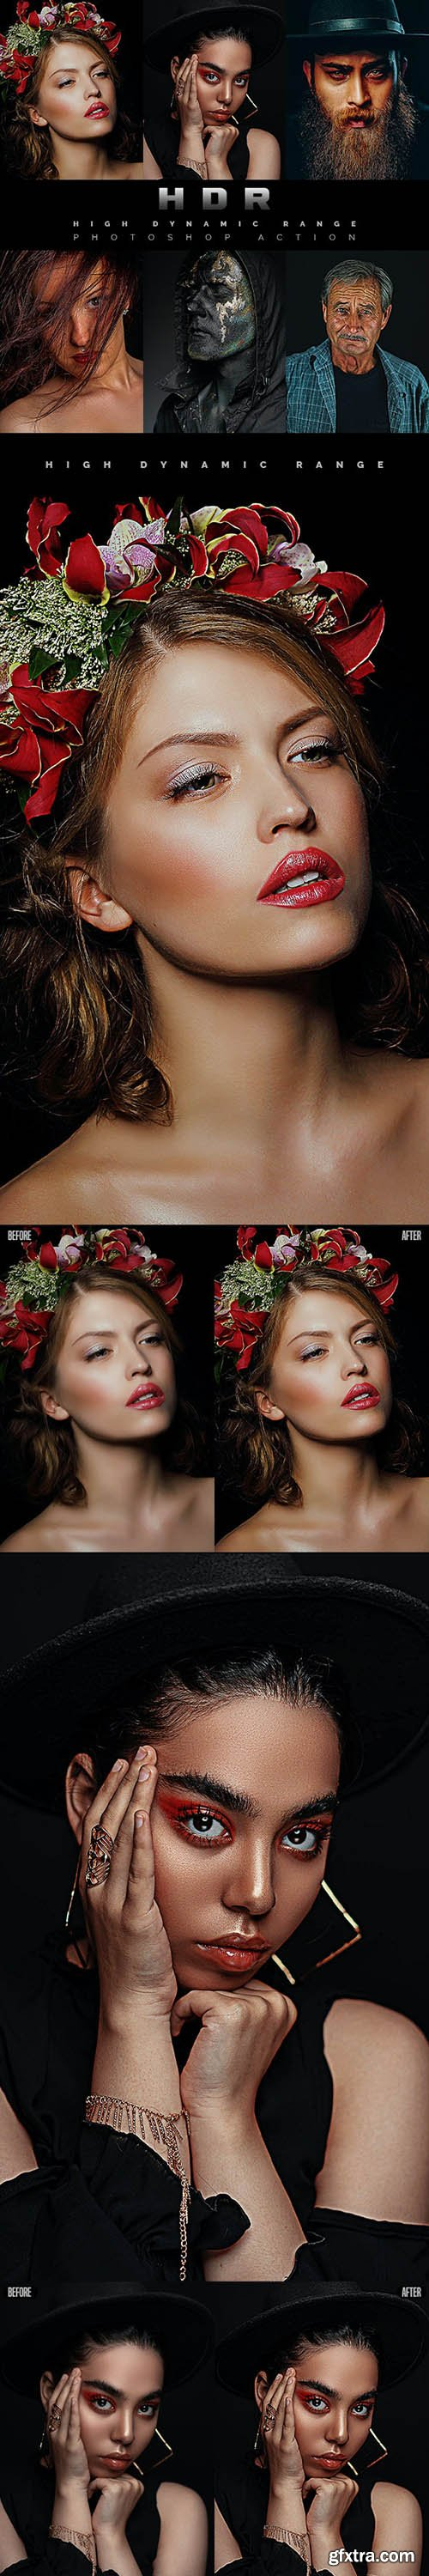 GraphicRiver - HDR - Photoshop Action 28206240